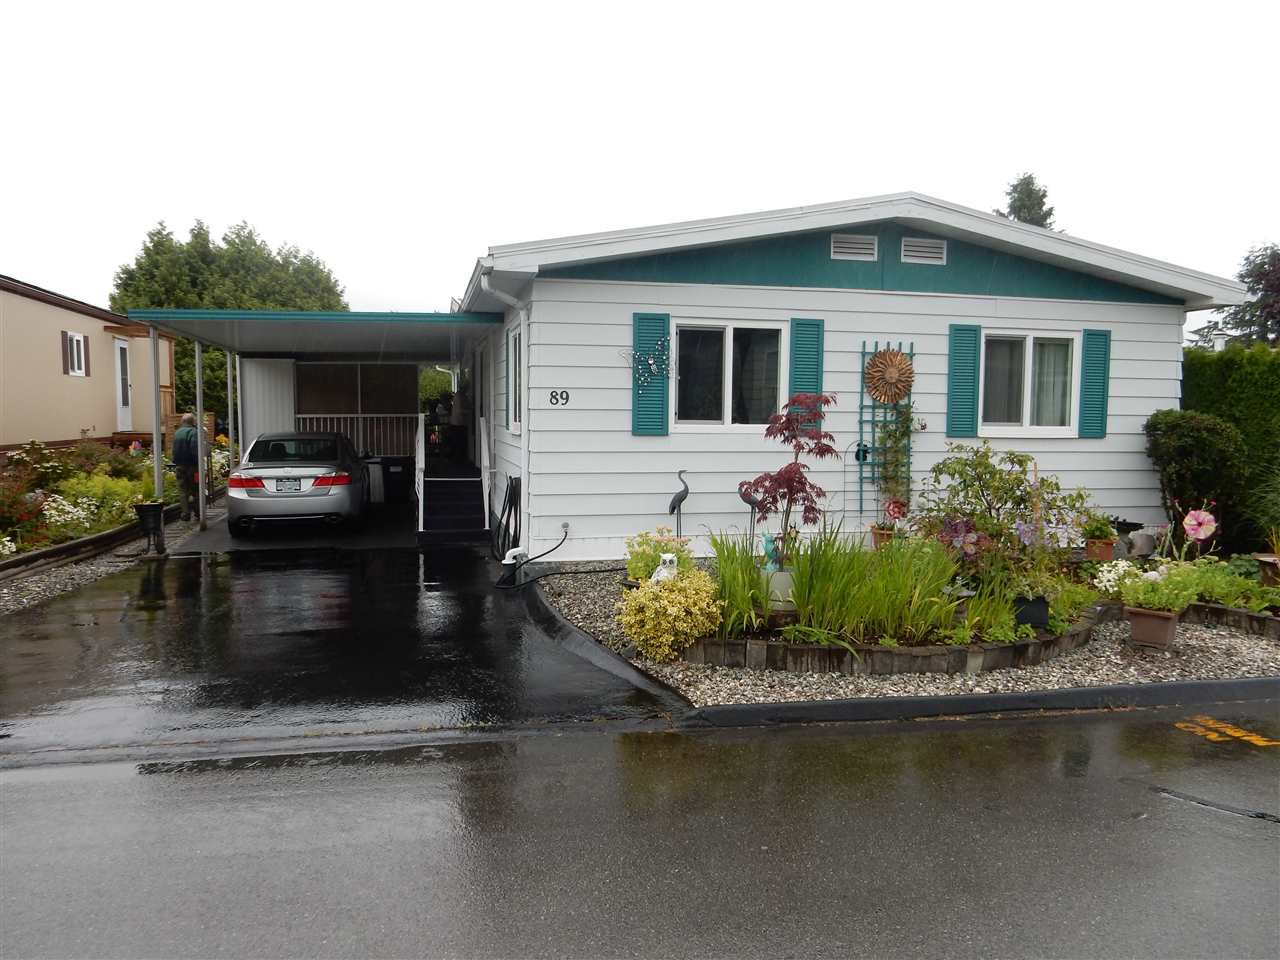 """Main Photo: 89 15875 20 Avenue in Surrey: King George Corridor Manufactured Home for sale in """"Searidge Bays"""" (South Surrey White Rock)  : MLS®# R2082414"""